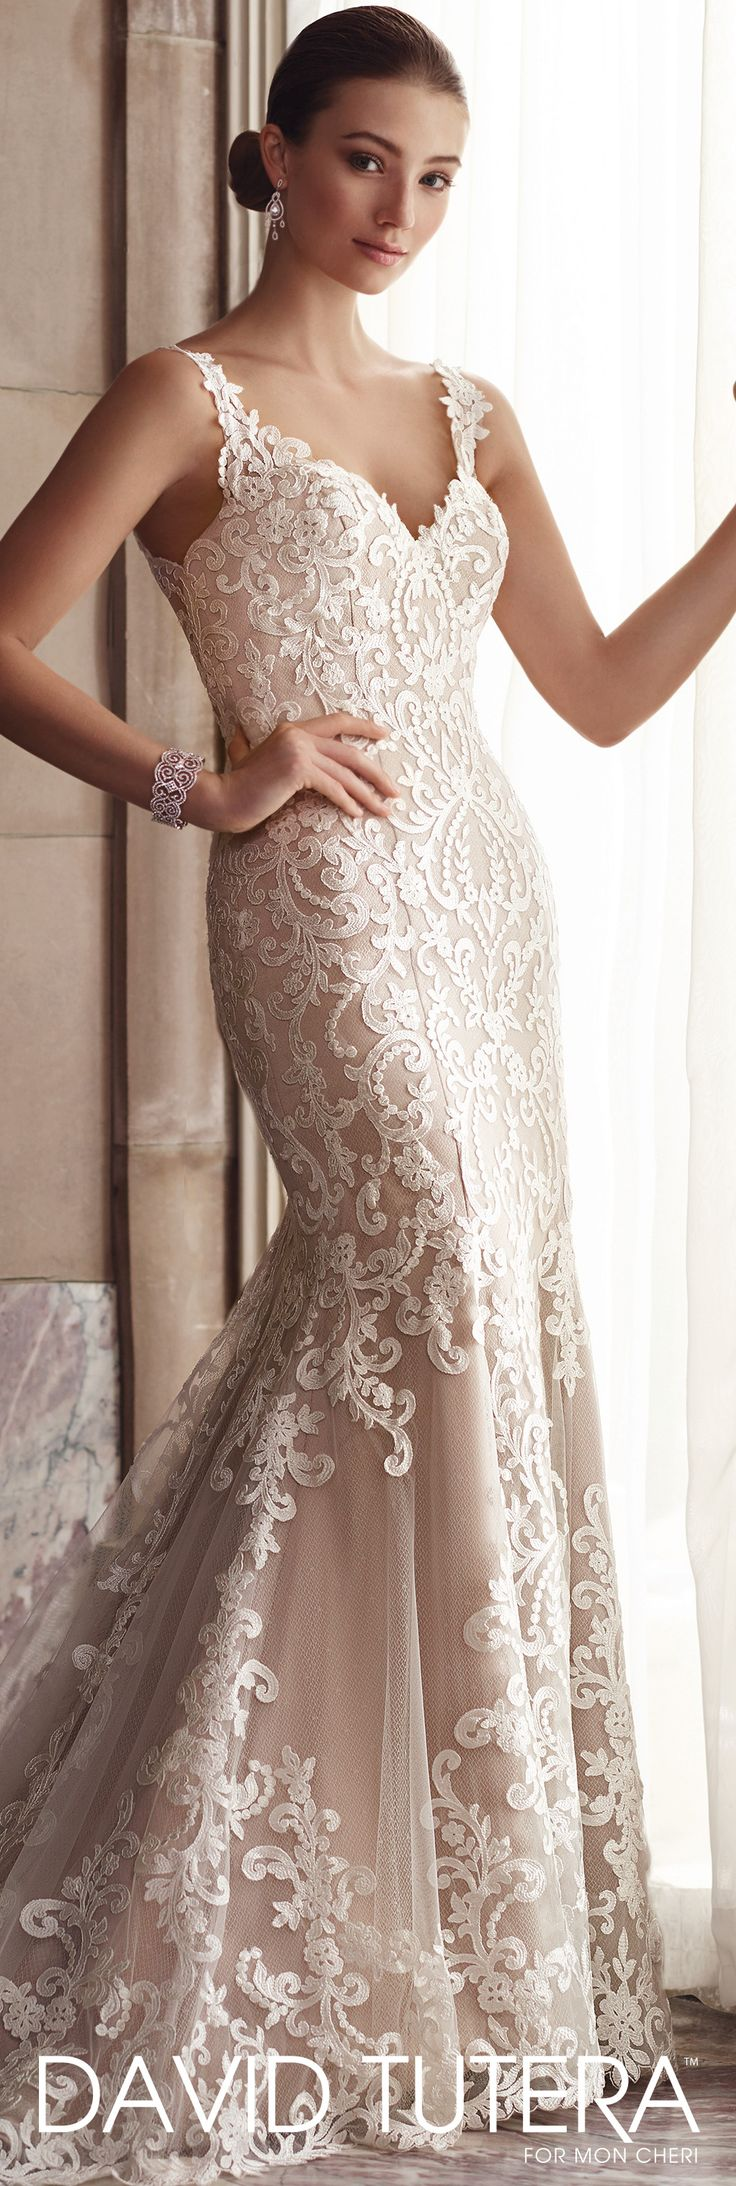 75 best images about david tutera for mon cheri on pinterest for David tutera beach wedding dresses